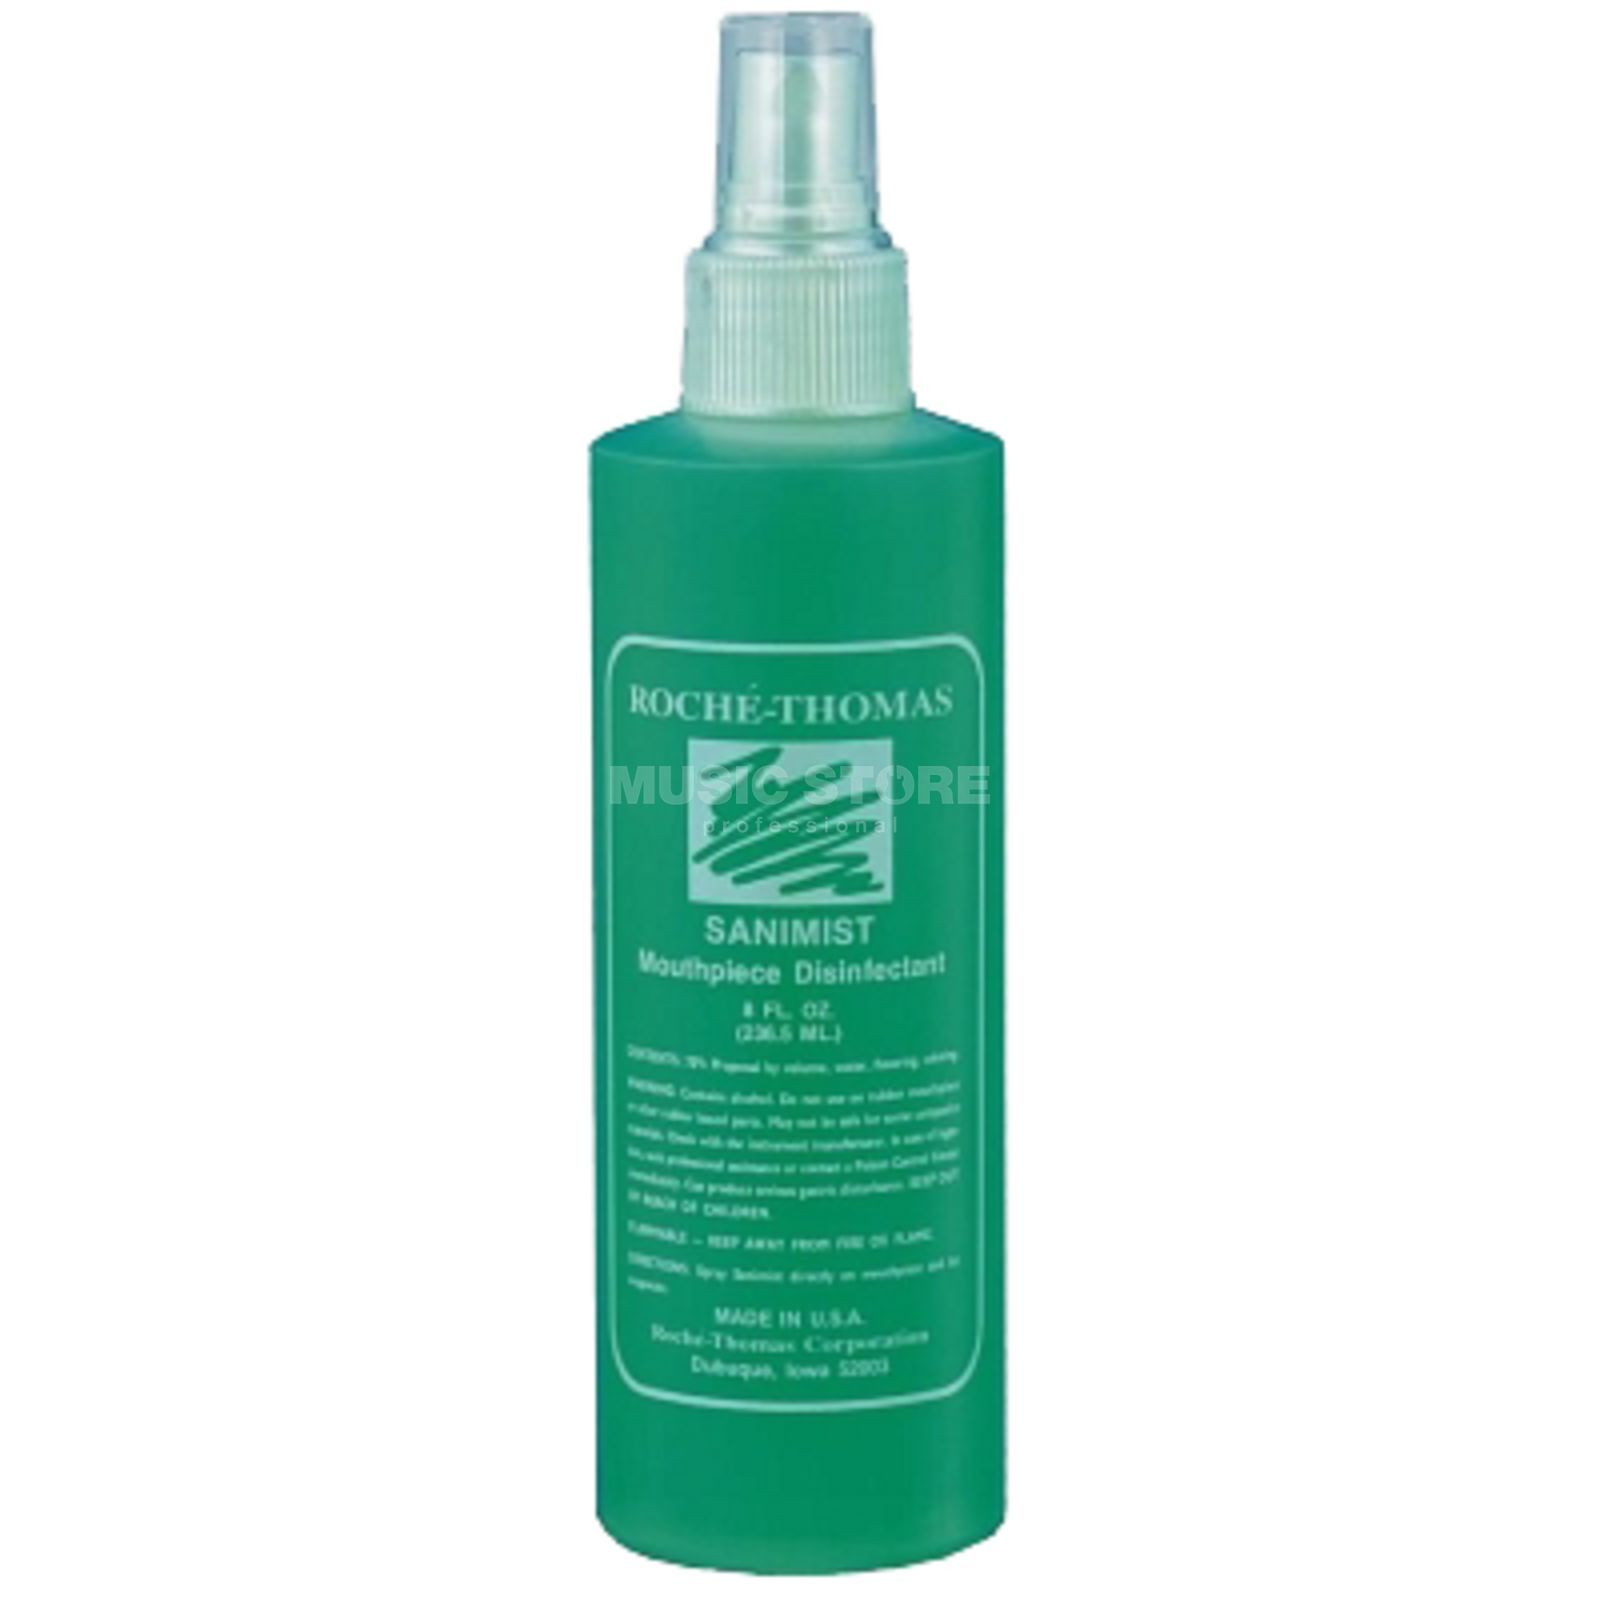 ROCHÉ-THOMAS Cleaning and Disinefectant Spray 60ml (100ml = 9.67Ç) Zdjęcie produktu